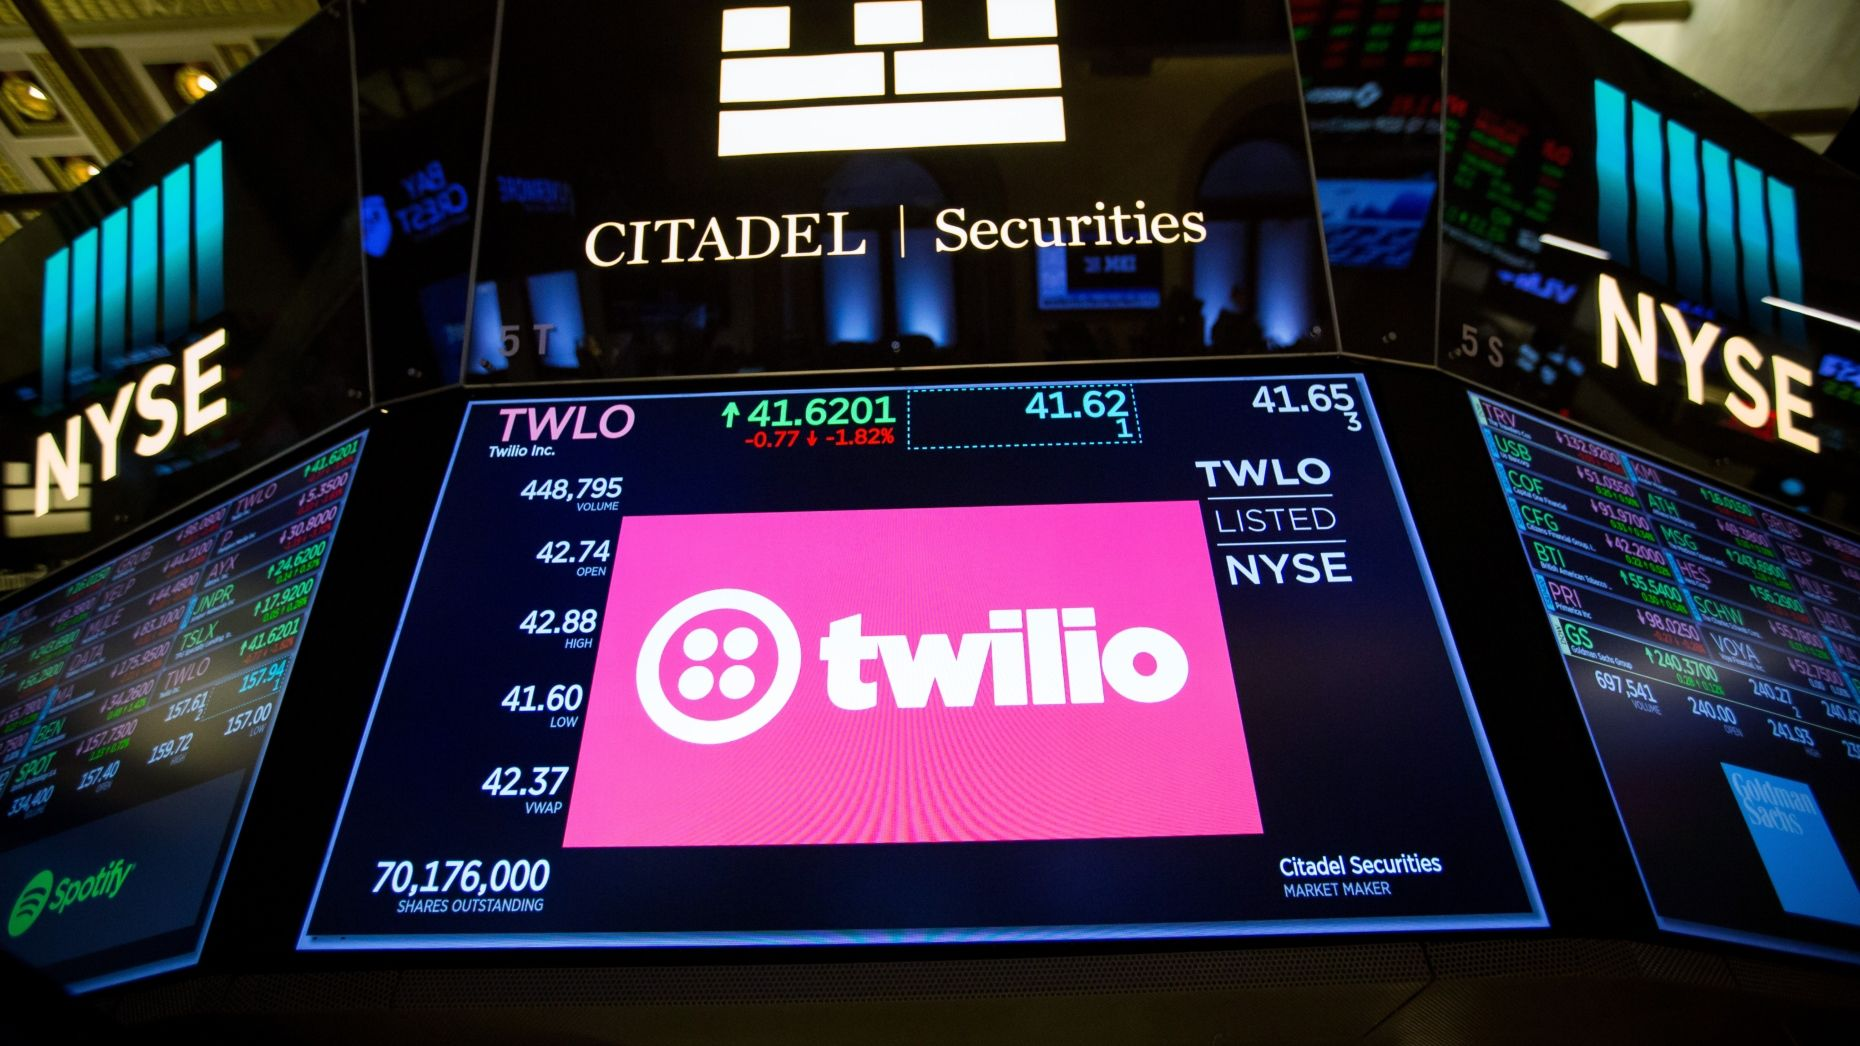 Software maker Twilio was among the companies in which mutual funds sold a substantial portion of their holdings post-IPO. Photo: Bloomberg